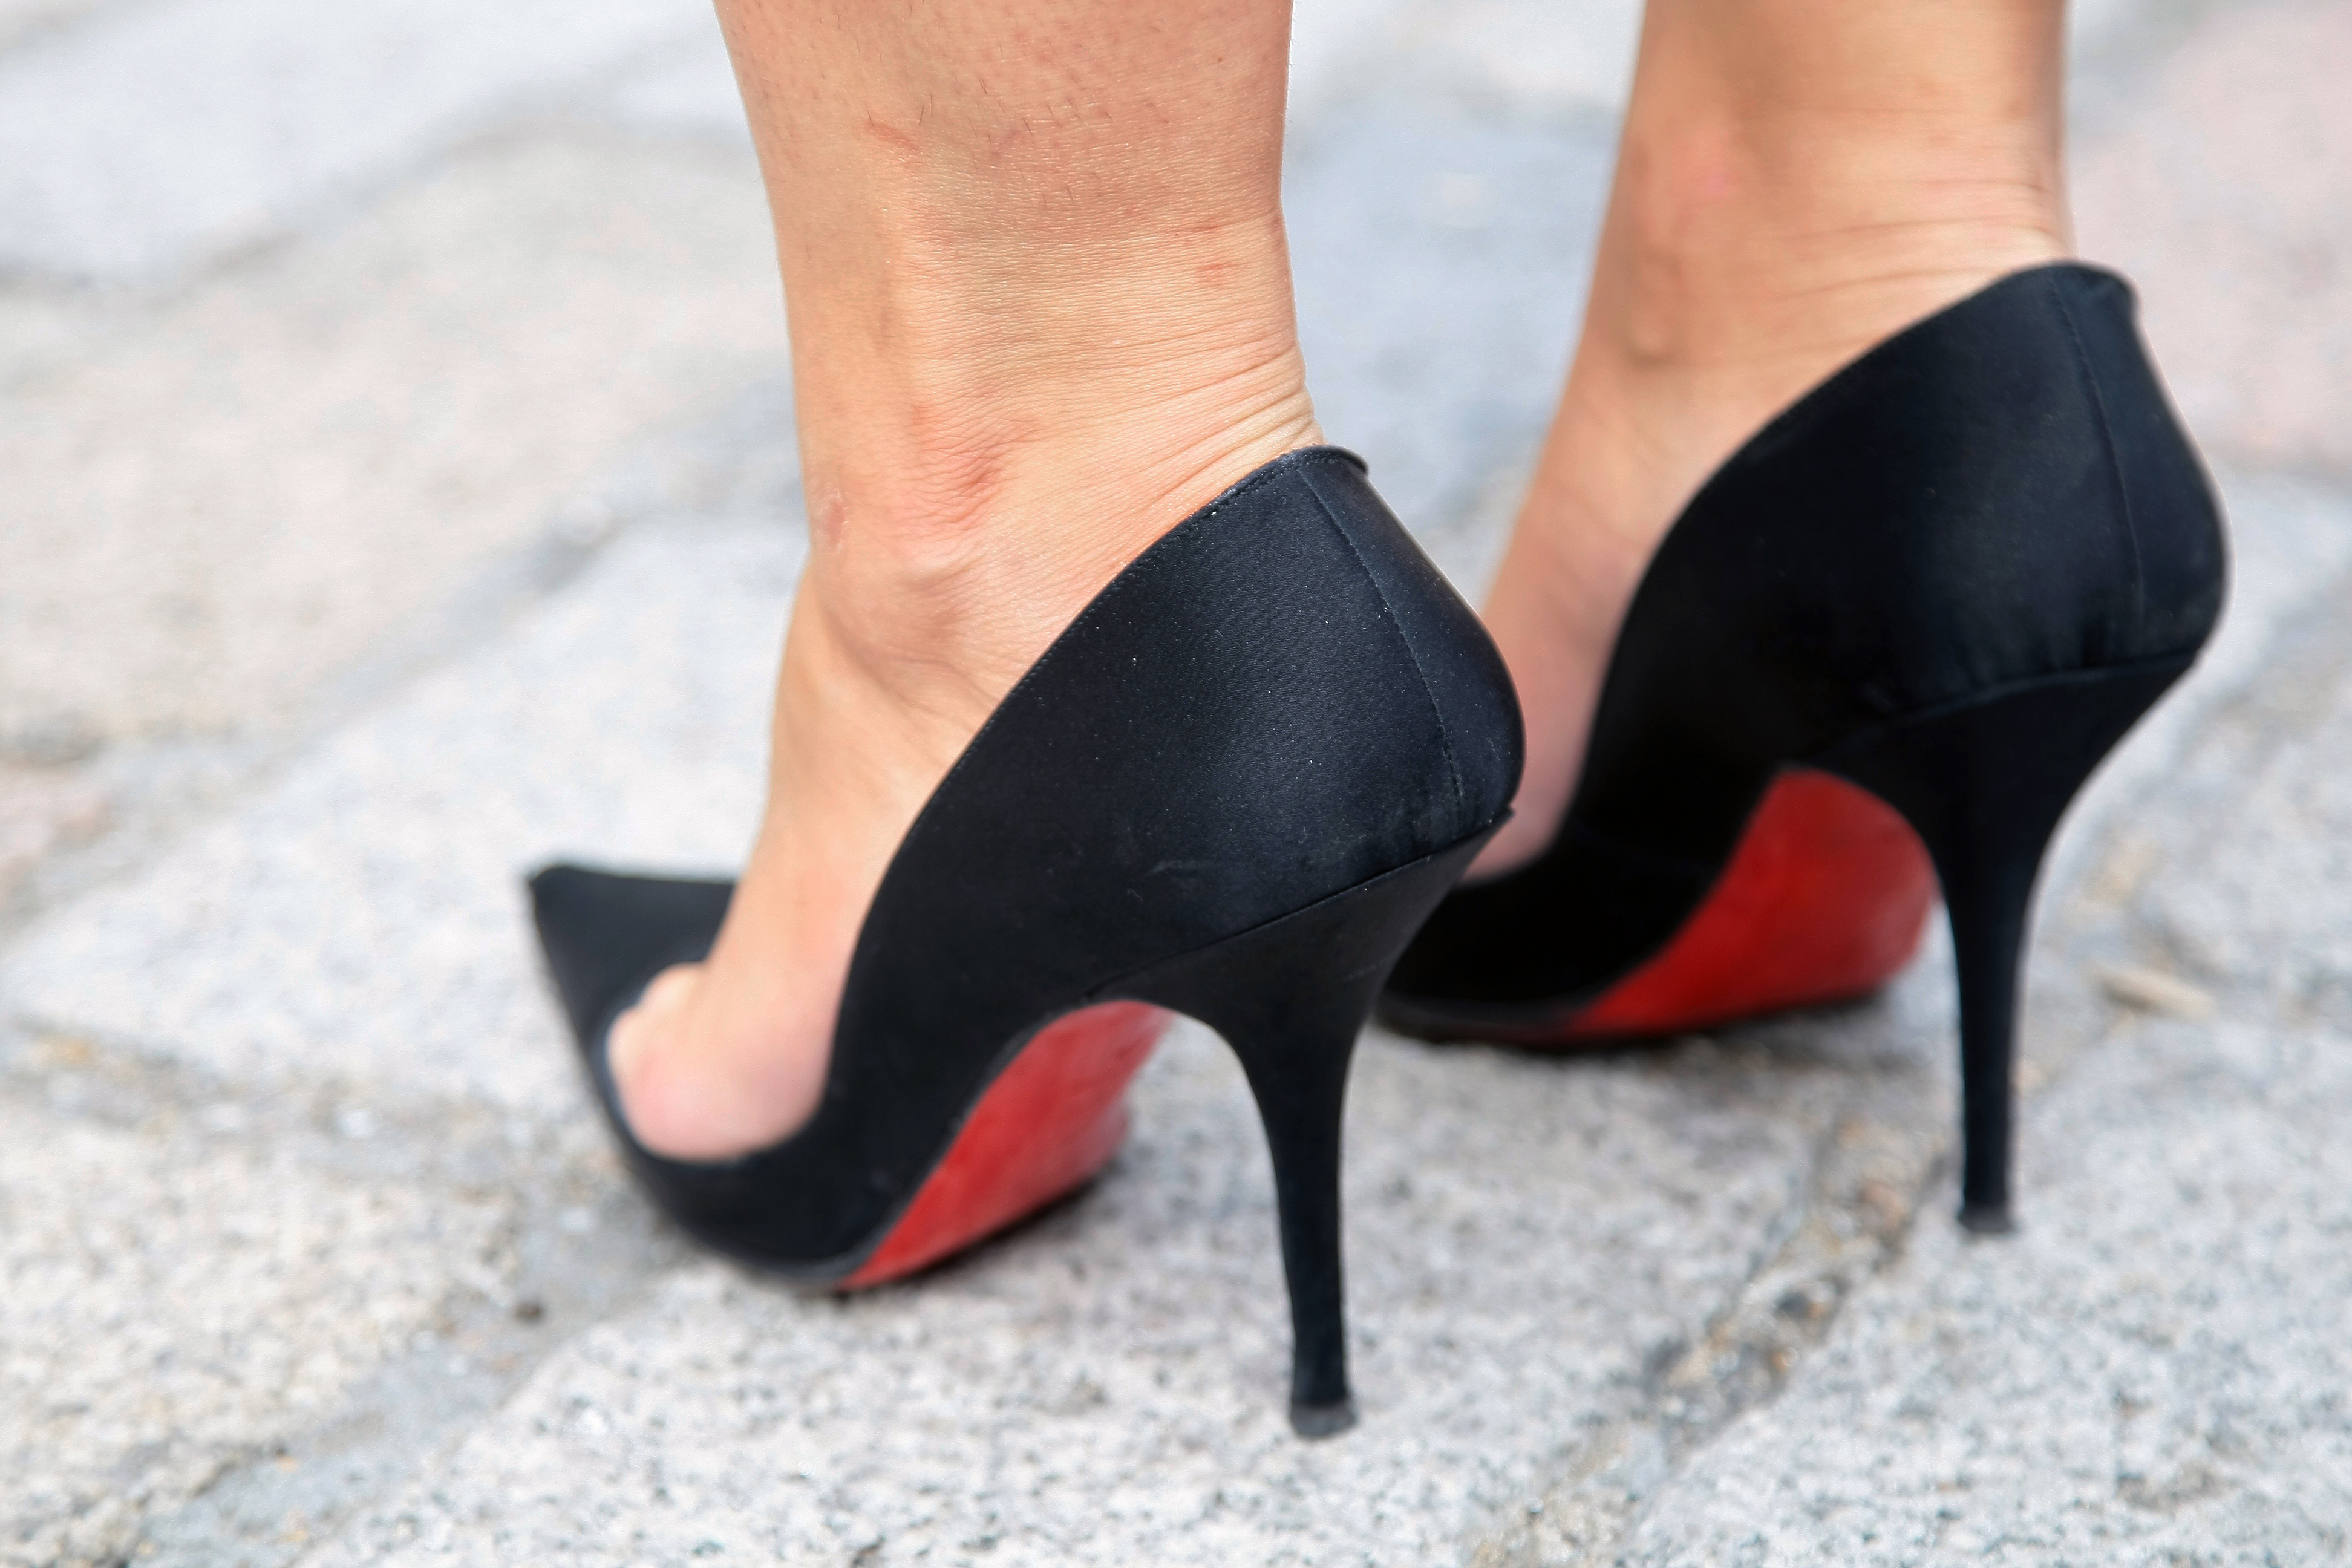 33d5eafa9f59 The Christian Louboutin Sample Sale Starts at Some Point Next Week